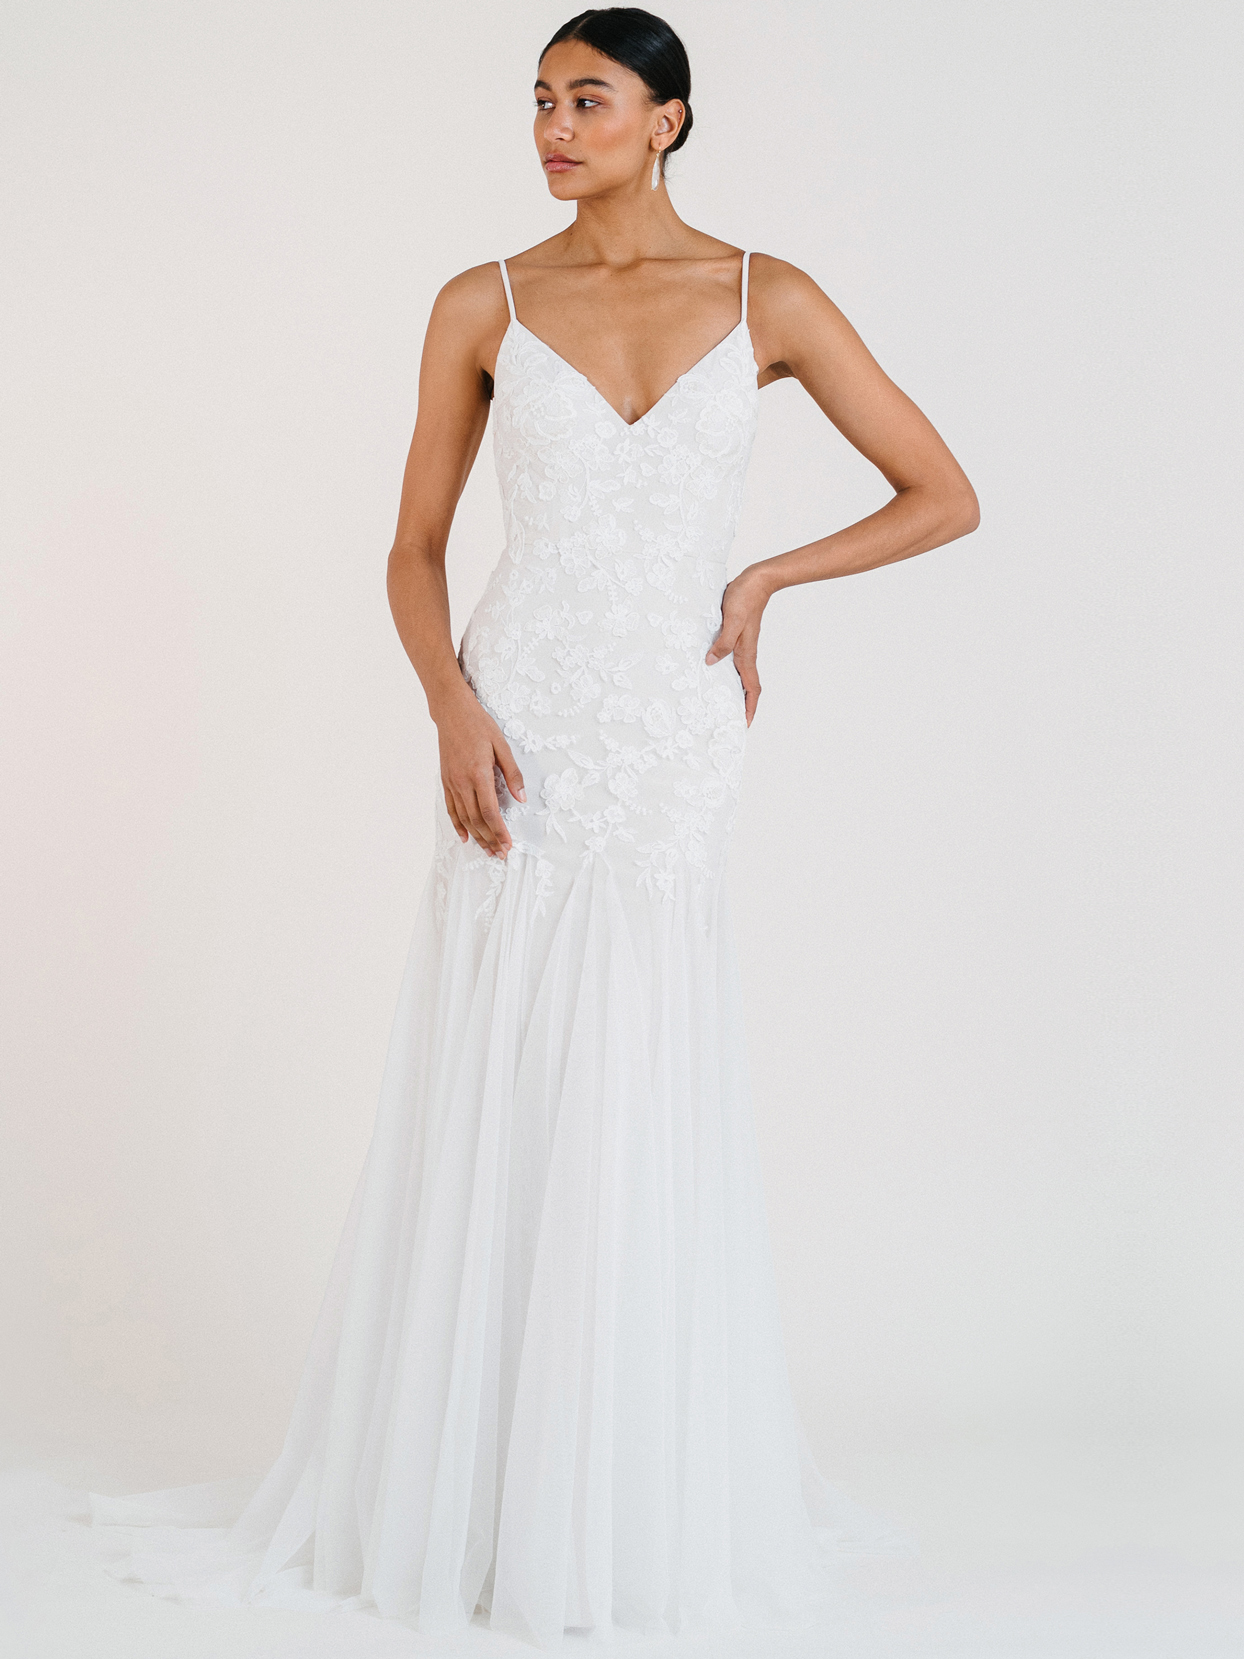 jenny by jenny yoo trumpet tulle lace v-neck wedding dress fall 2020